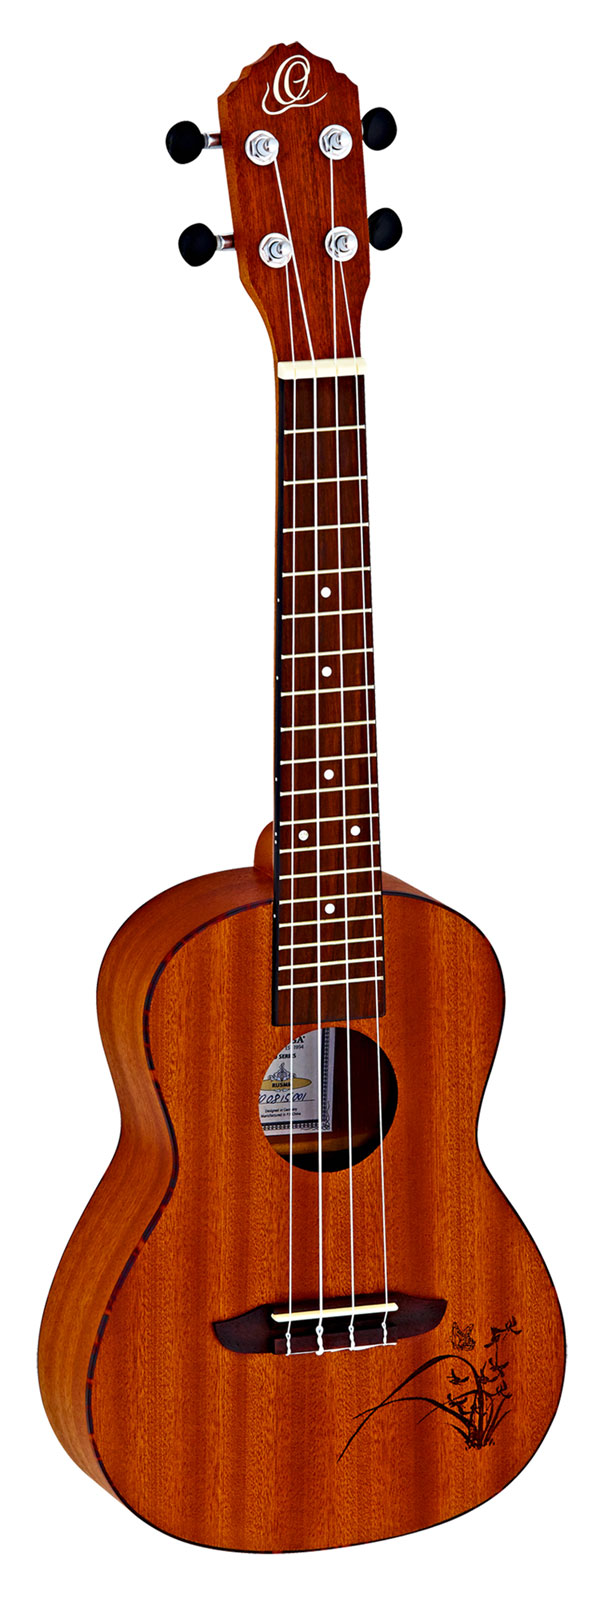 Music concert ukulele mahogany 24 inch uke with gig bag for Housse ukulele concert